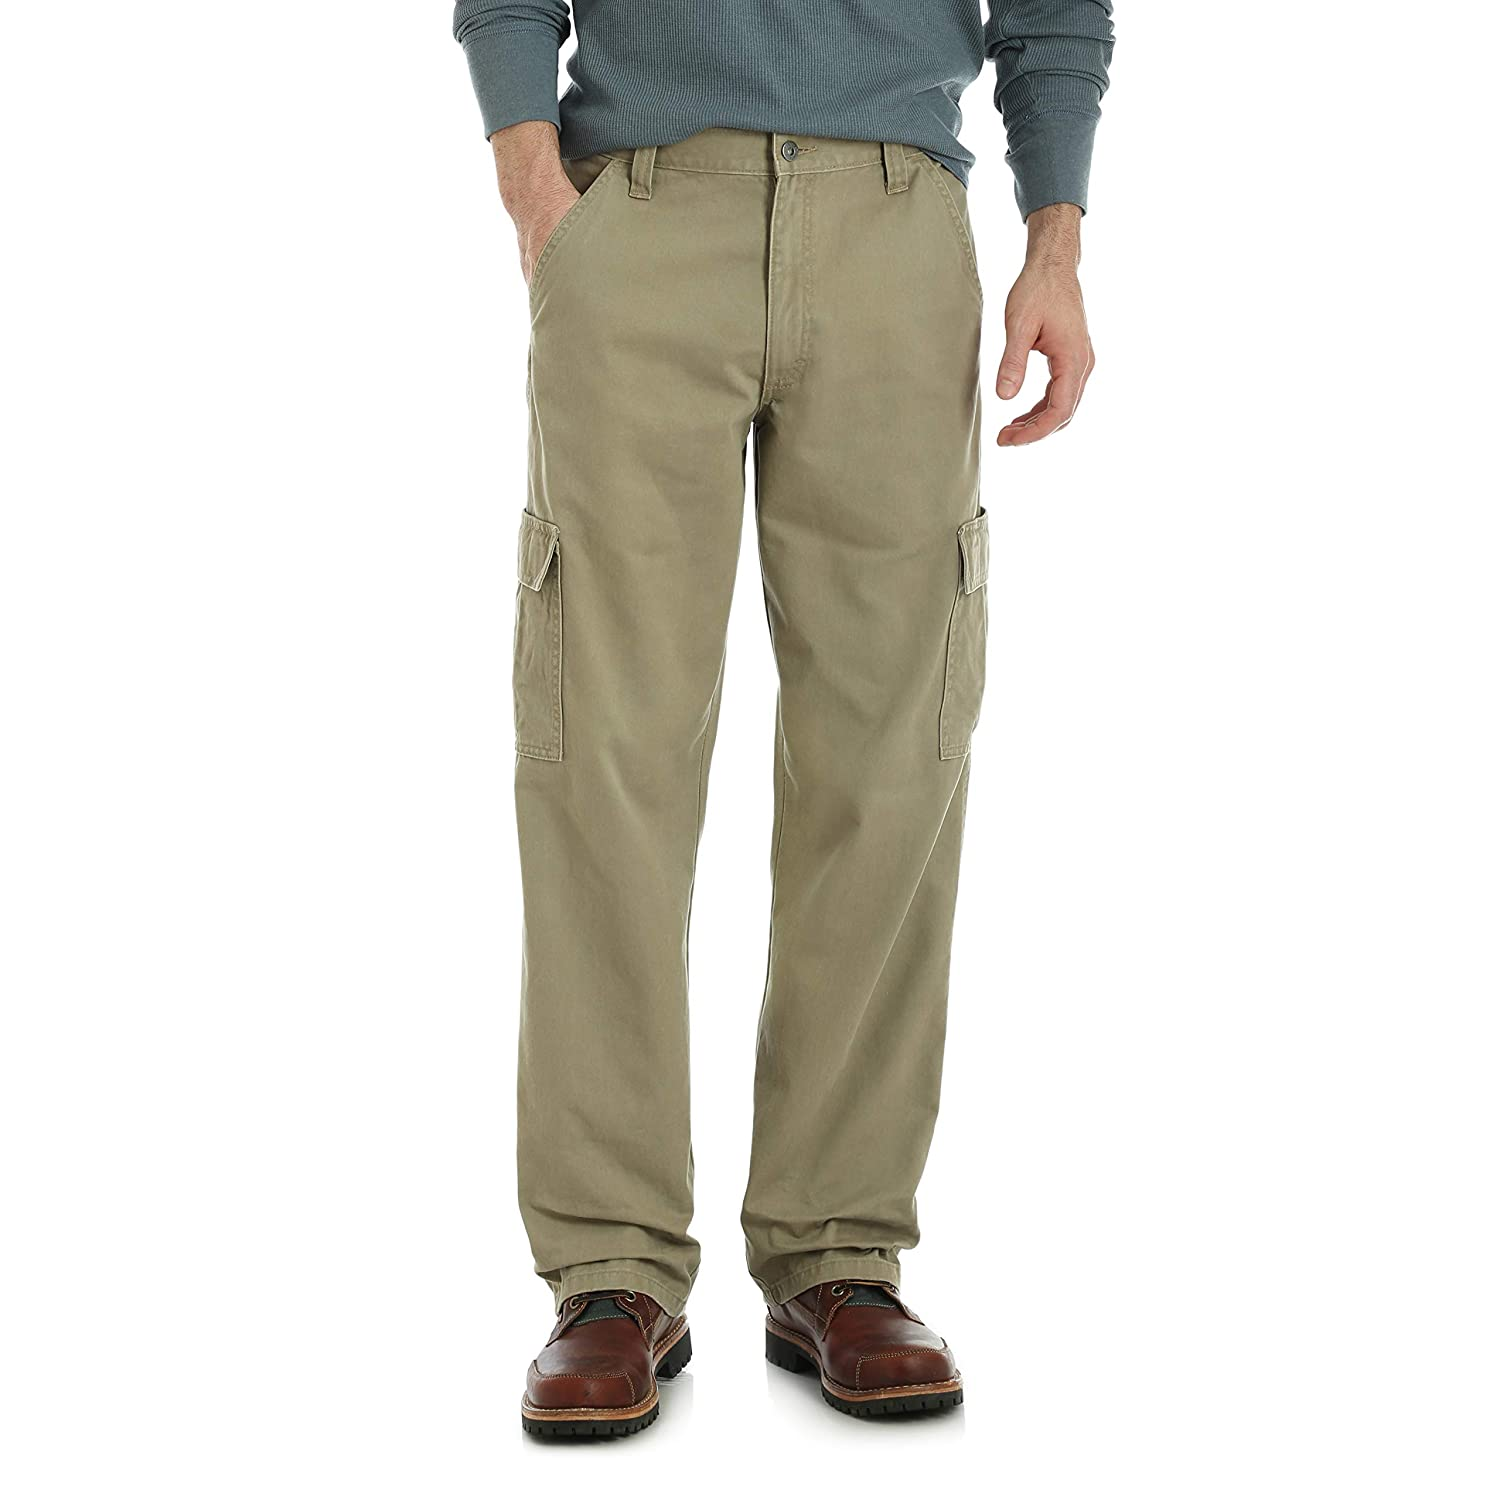 Wrangler Authentics Men's Classic Twill Relaxed Fit Cargo Pant ZM6LG